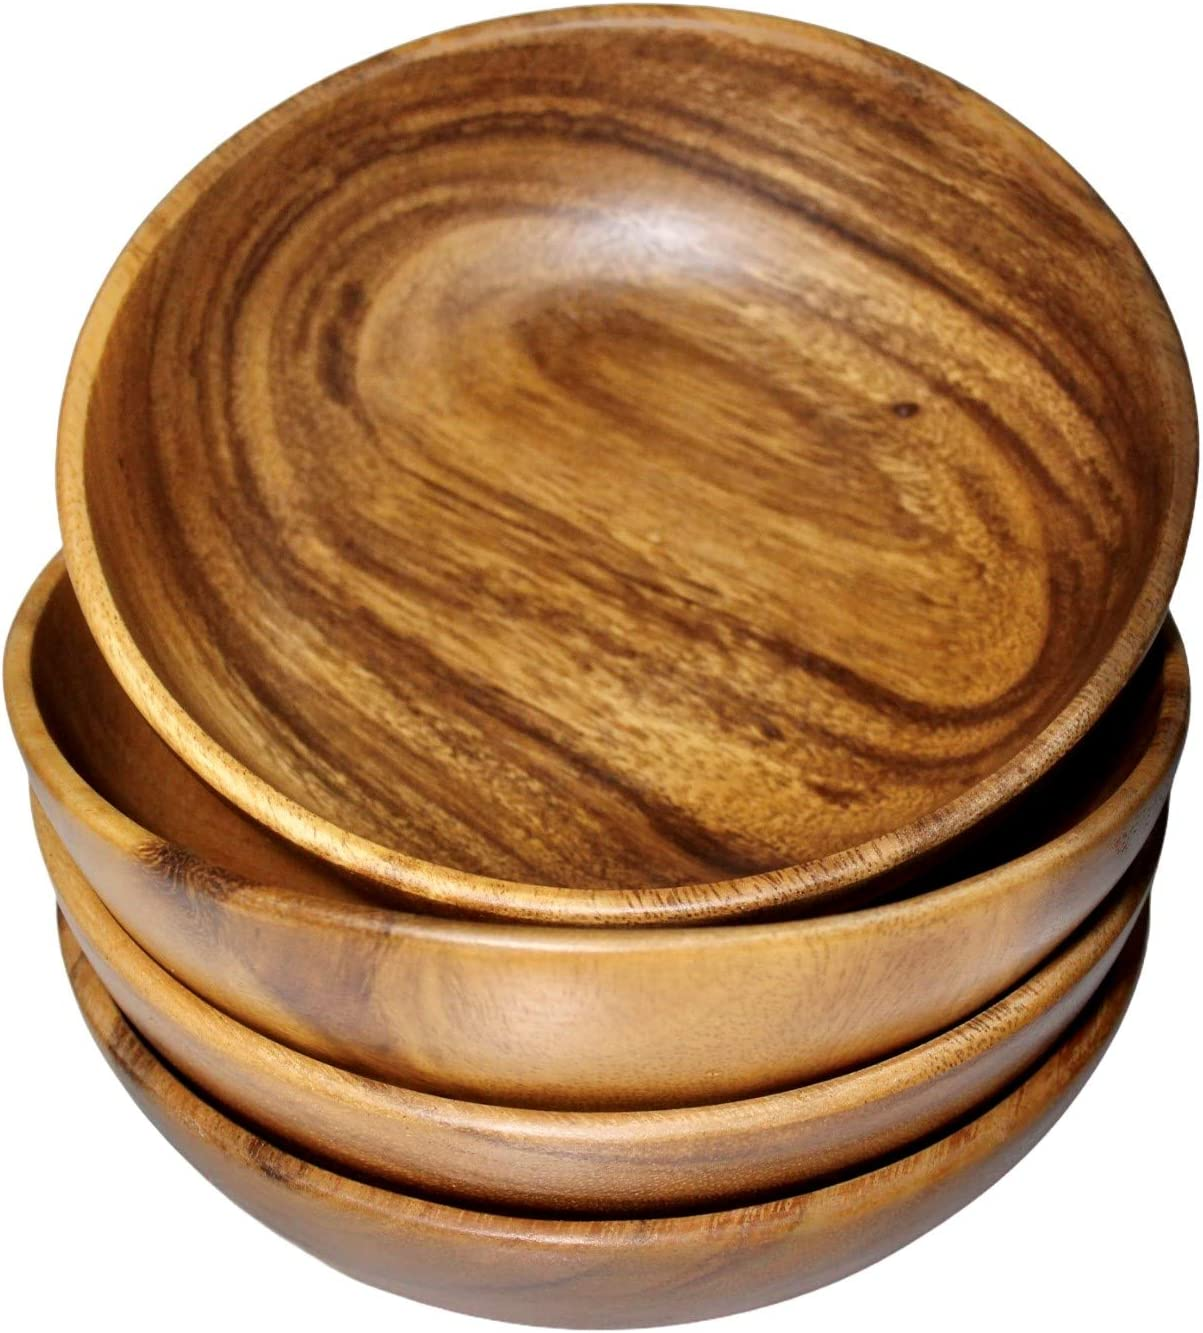 Wrightmart Wood Bowl Wooden Salad Set Popularity 4 Individual Bow OFFicial shop of